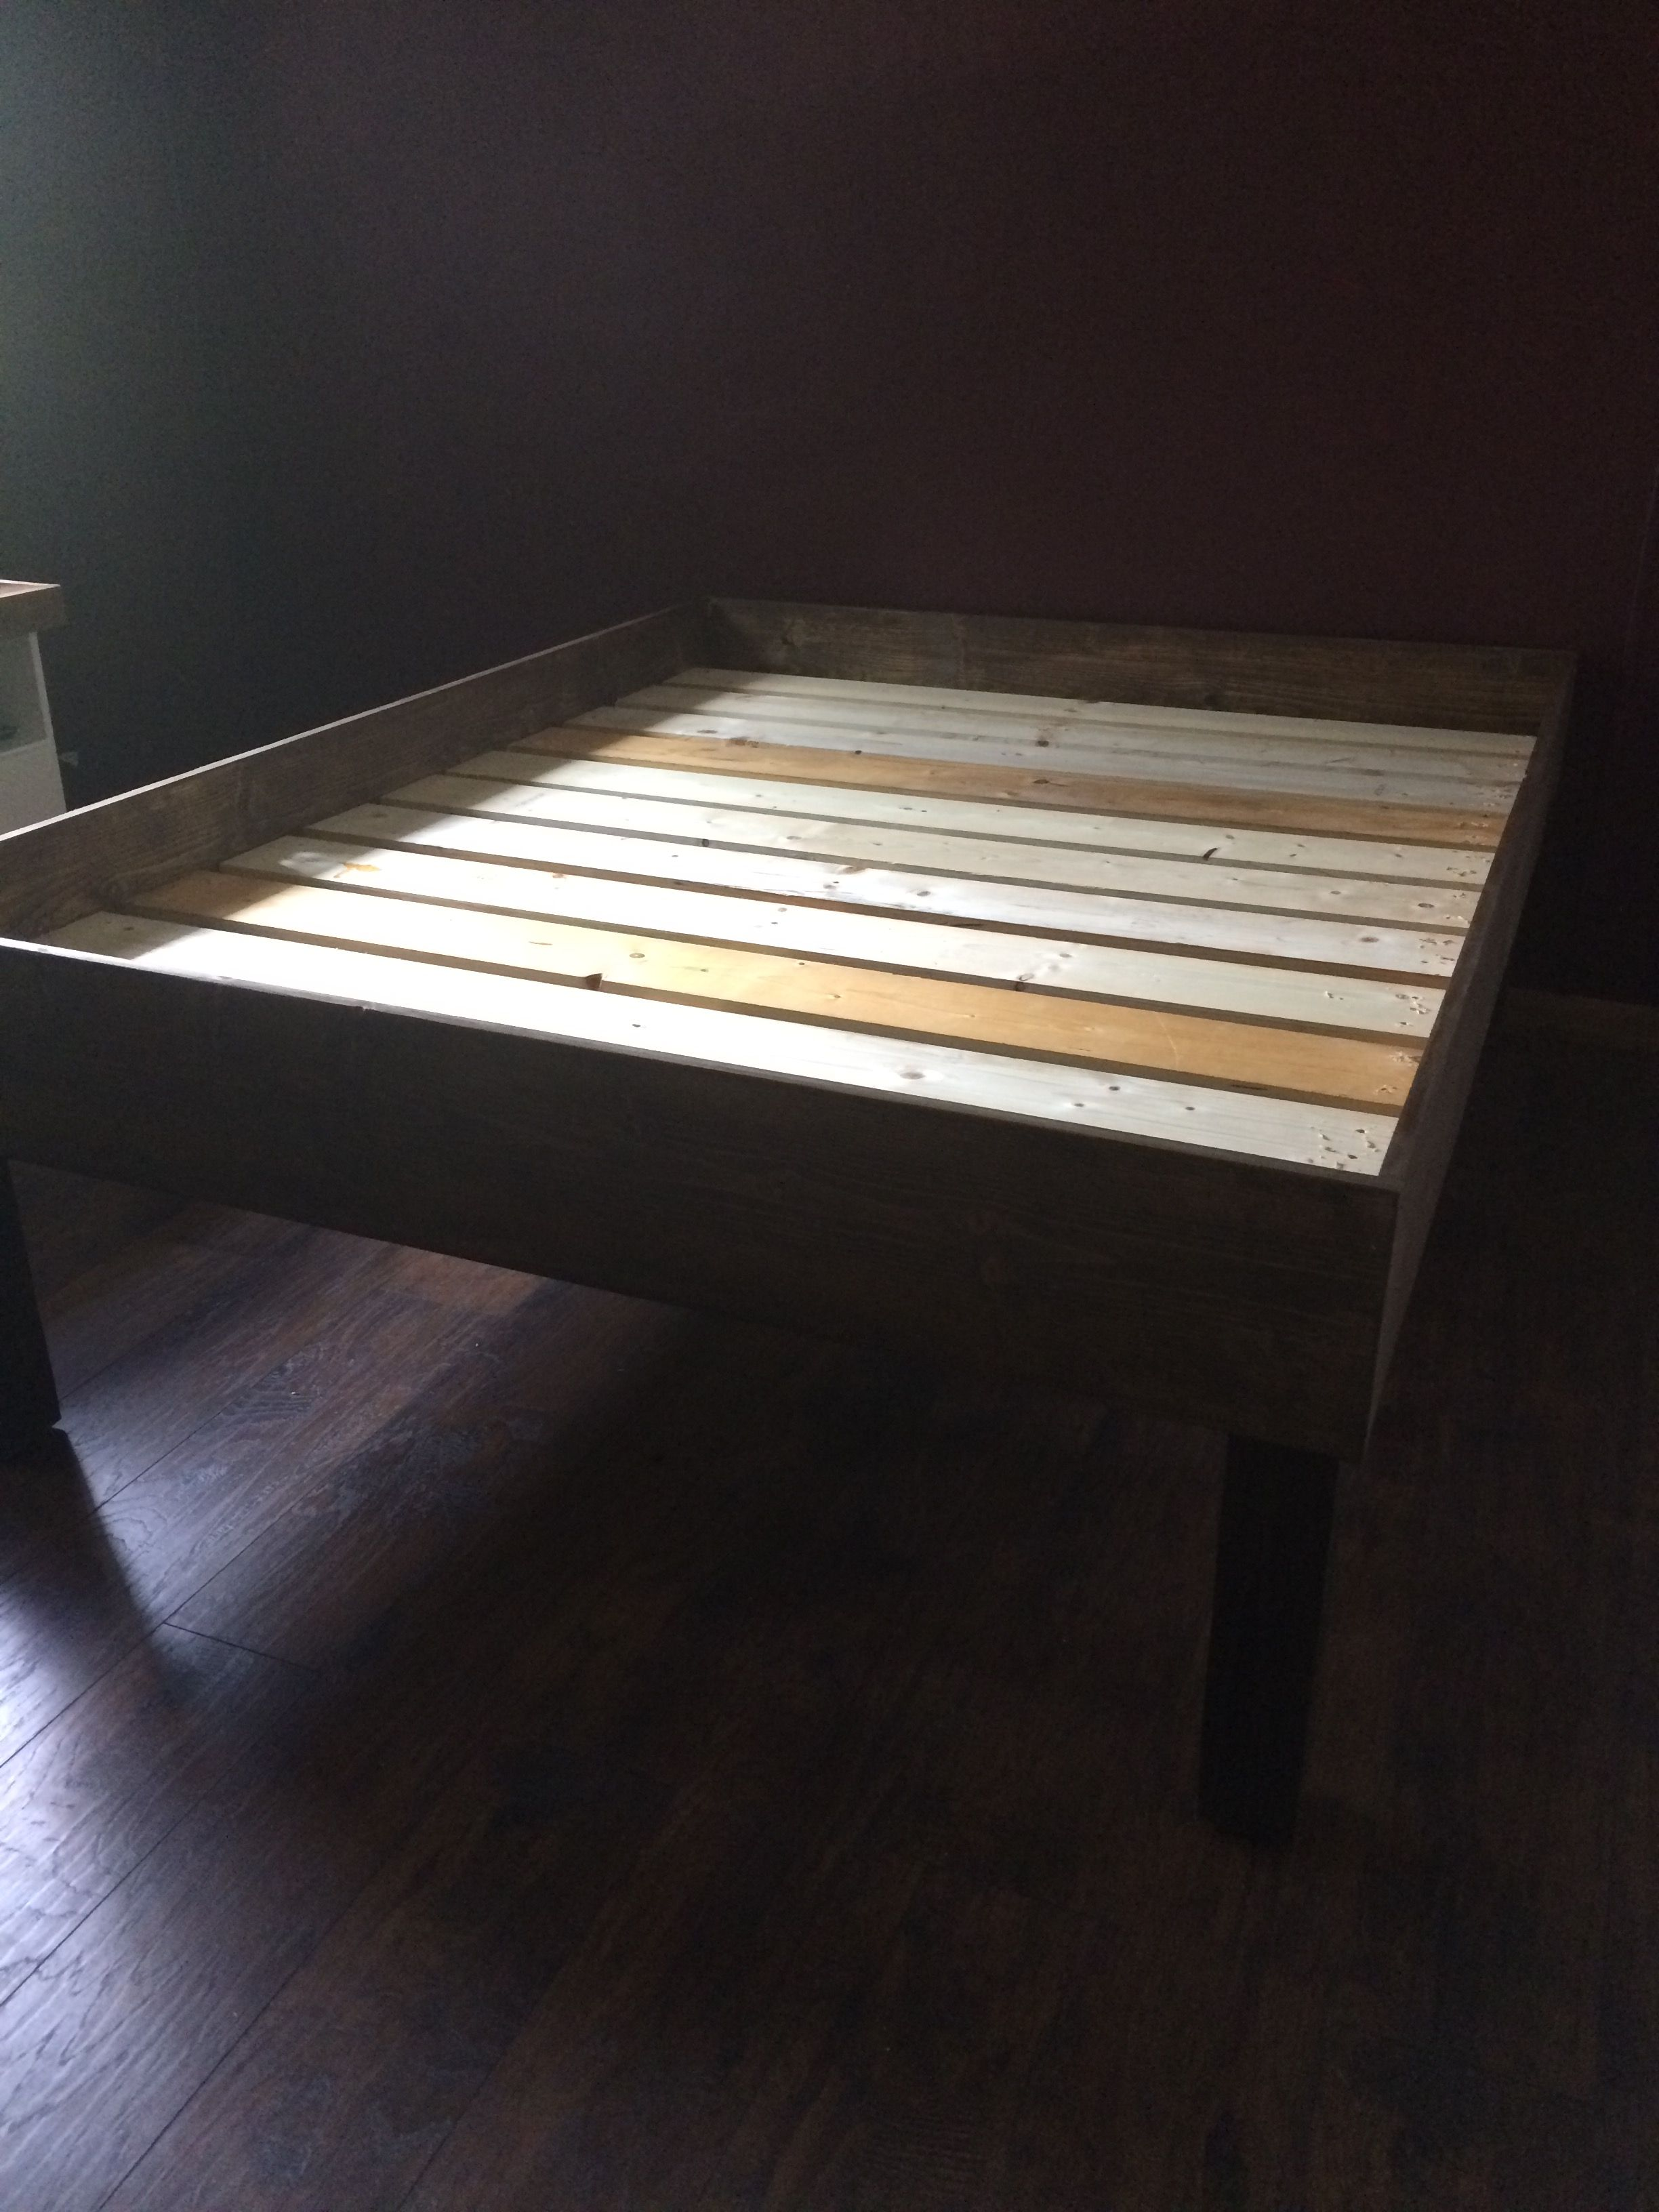 Josh S Bed Construction Items Used Spruce 4 8 Lengths X 10 Pine